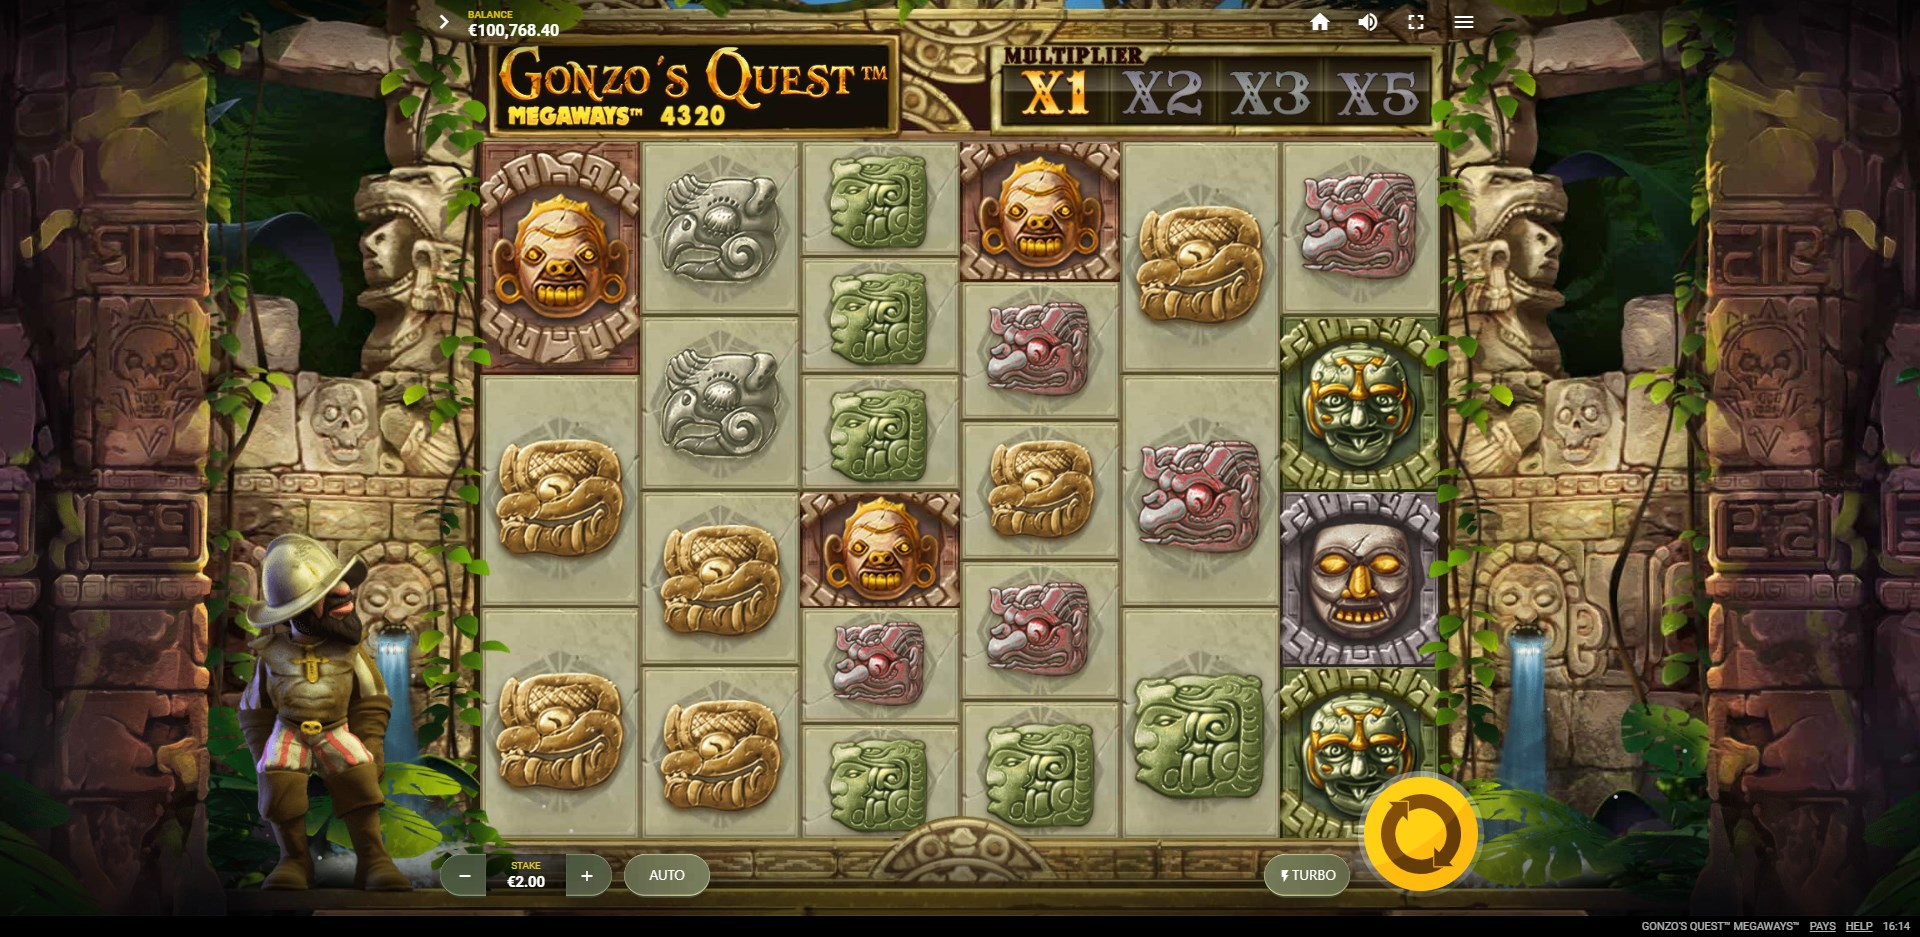 slots-gonzos-quest-slot-red-tiger-reels-during-main-game